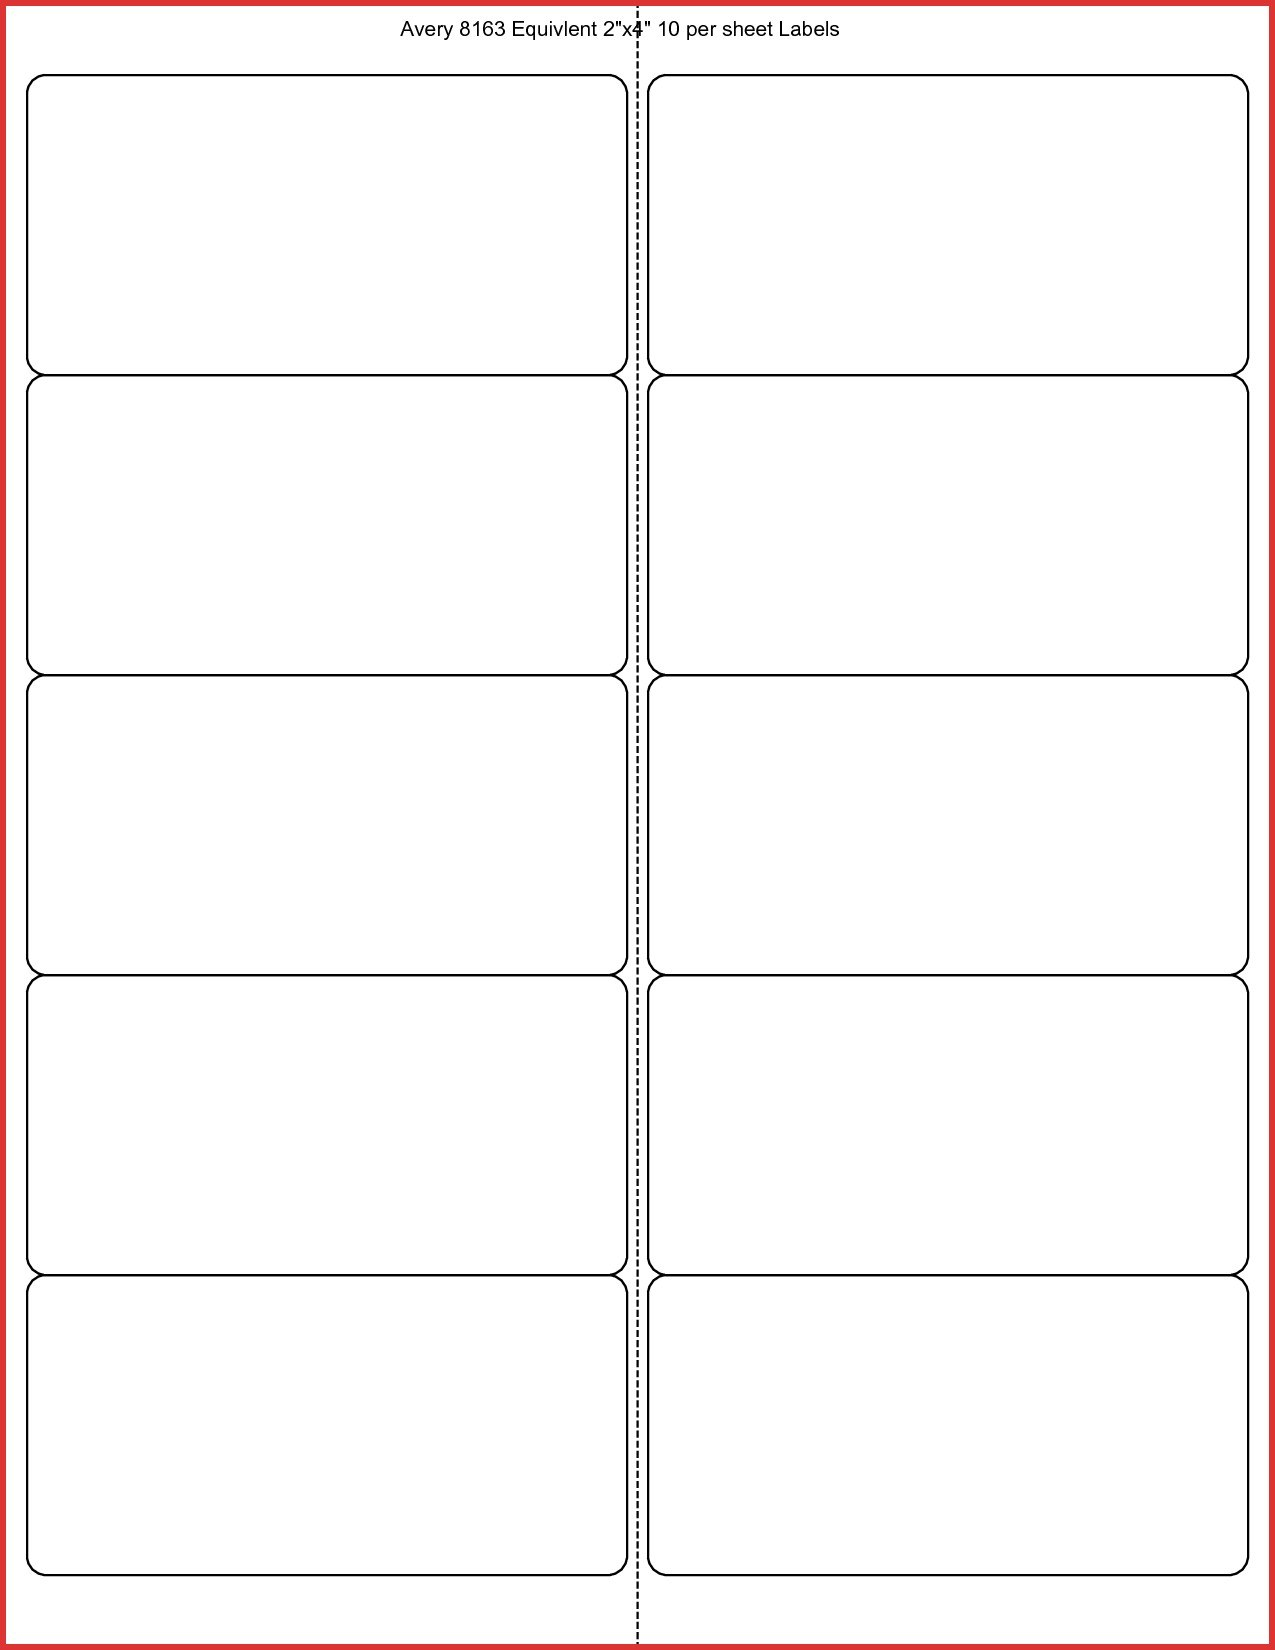 New X Label Template  Job Latter Intended For 2 X 4 Label Template 10 Per Sheet